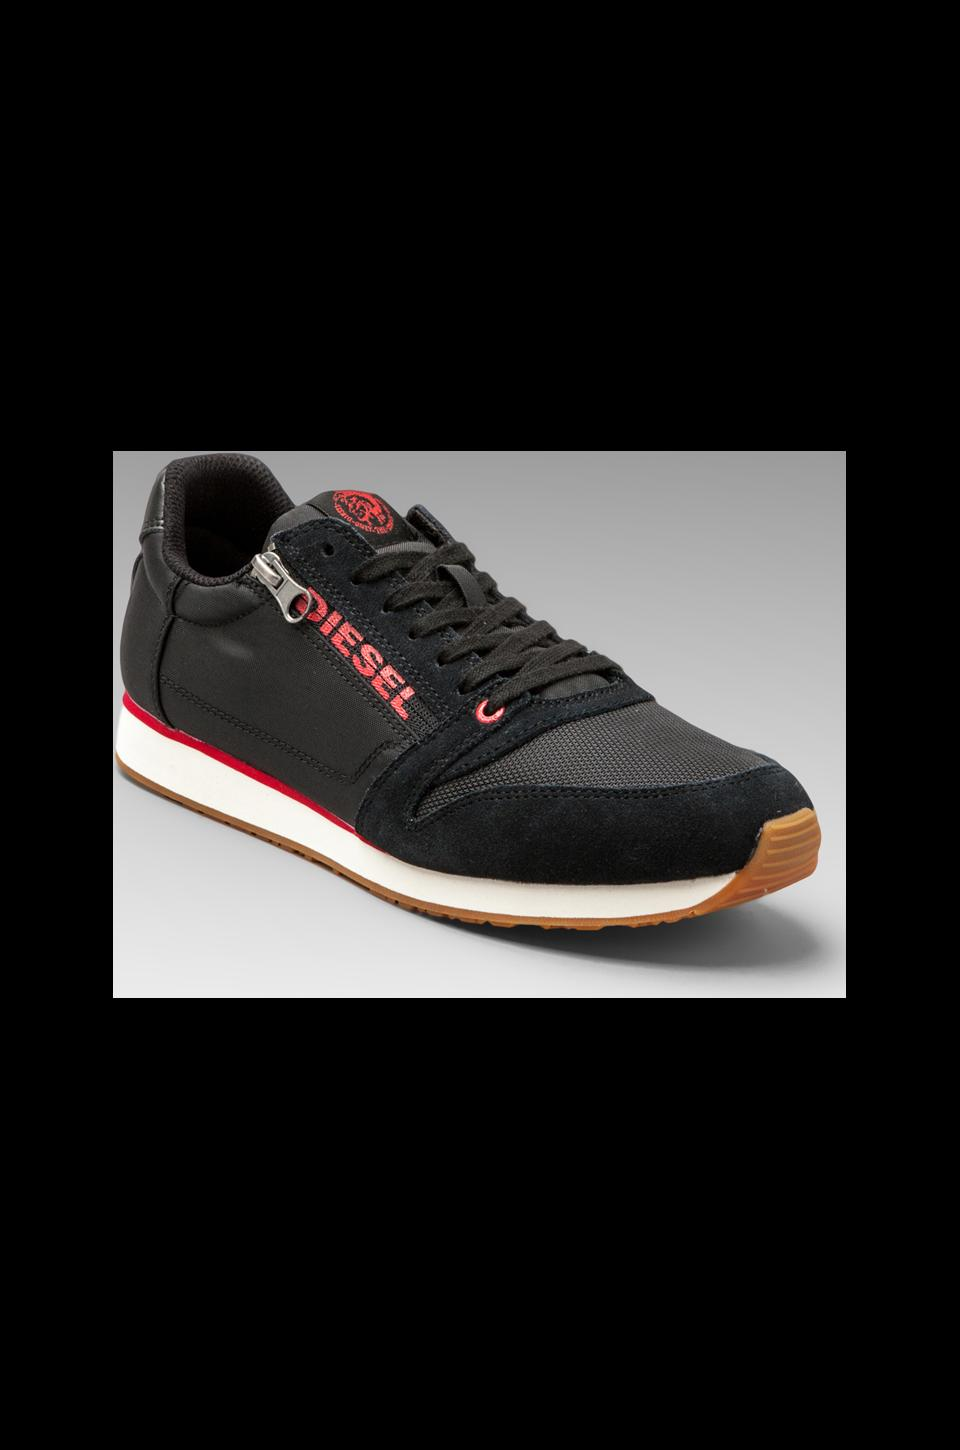 Diesel Great Era Slocker Sneaker in Black/Formula One